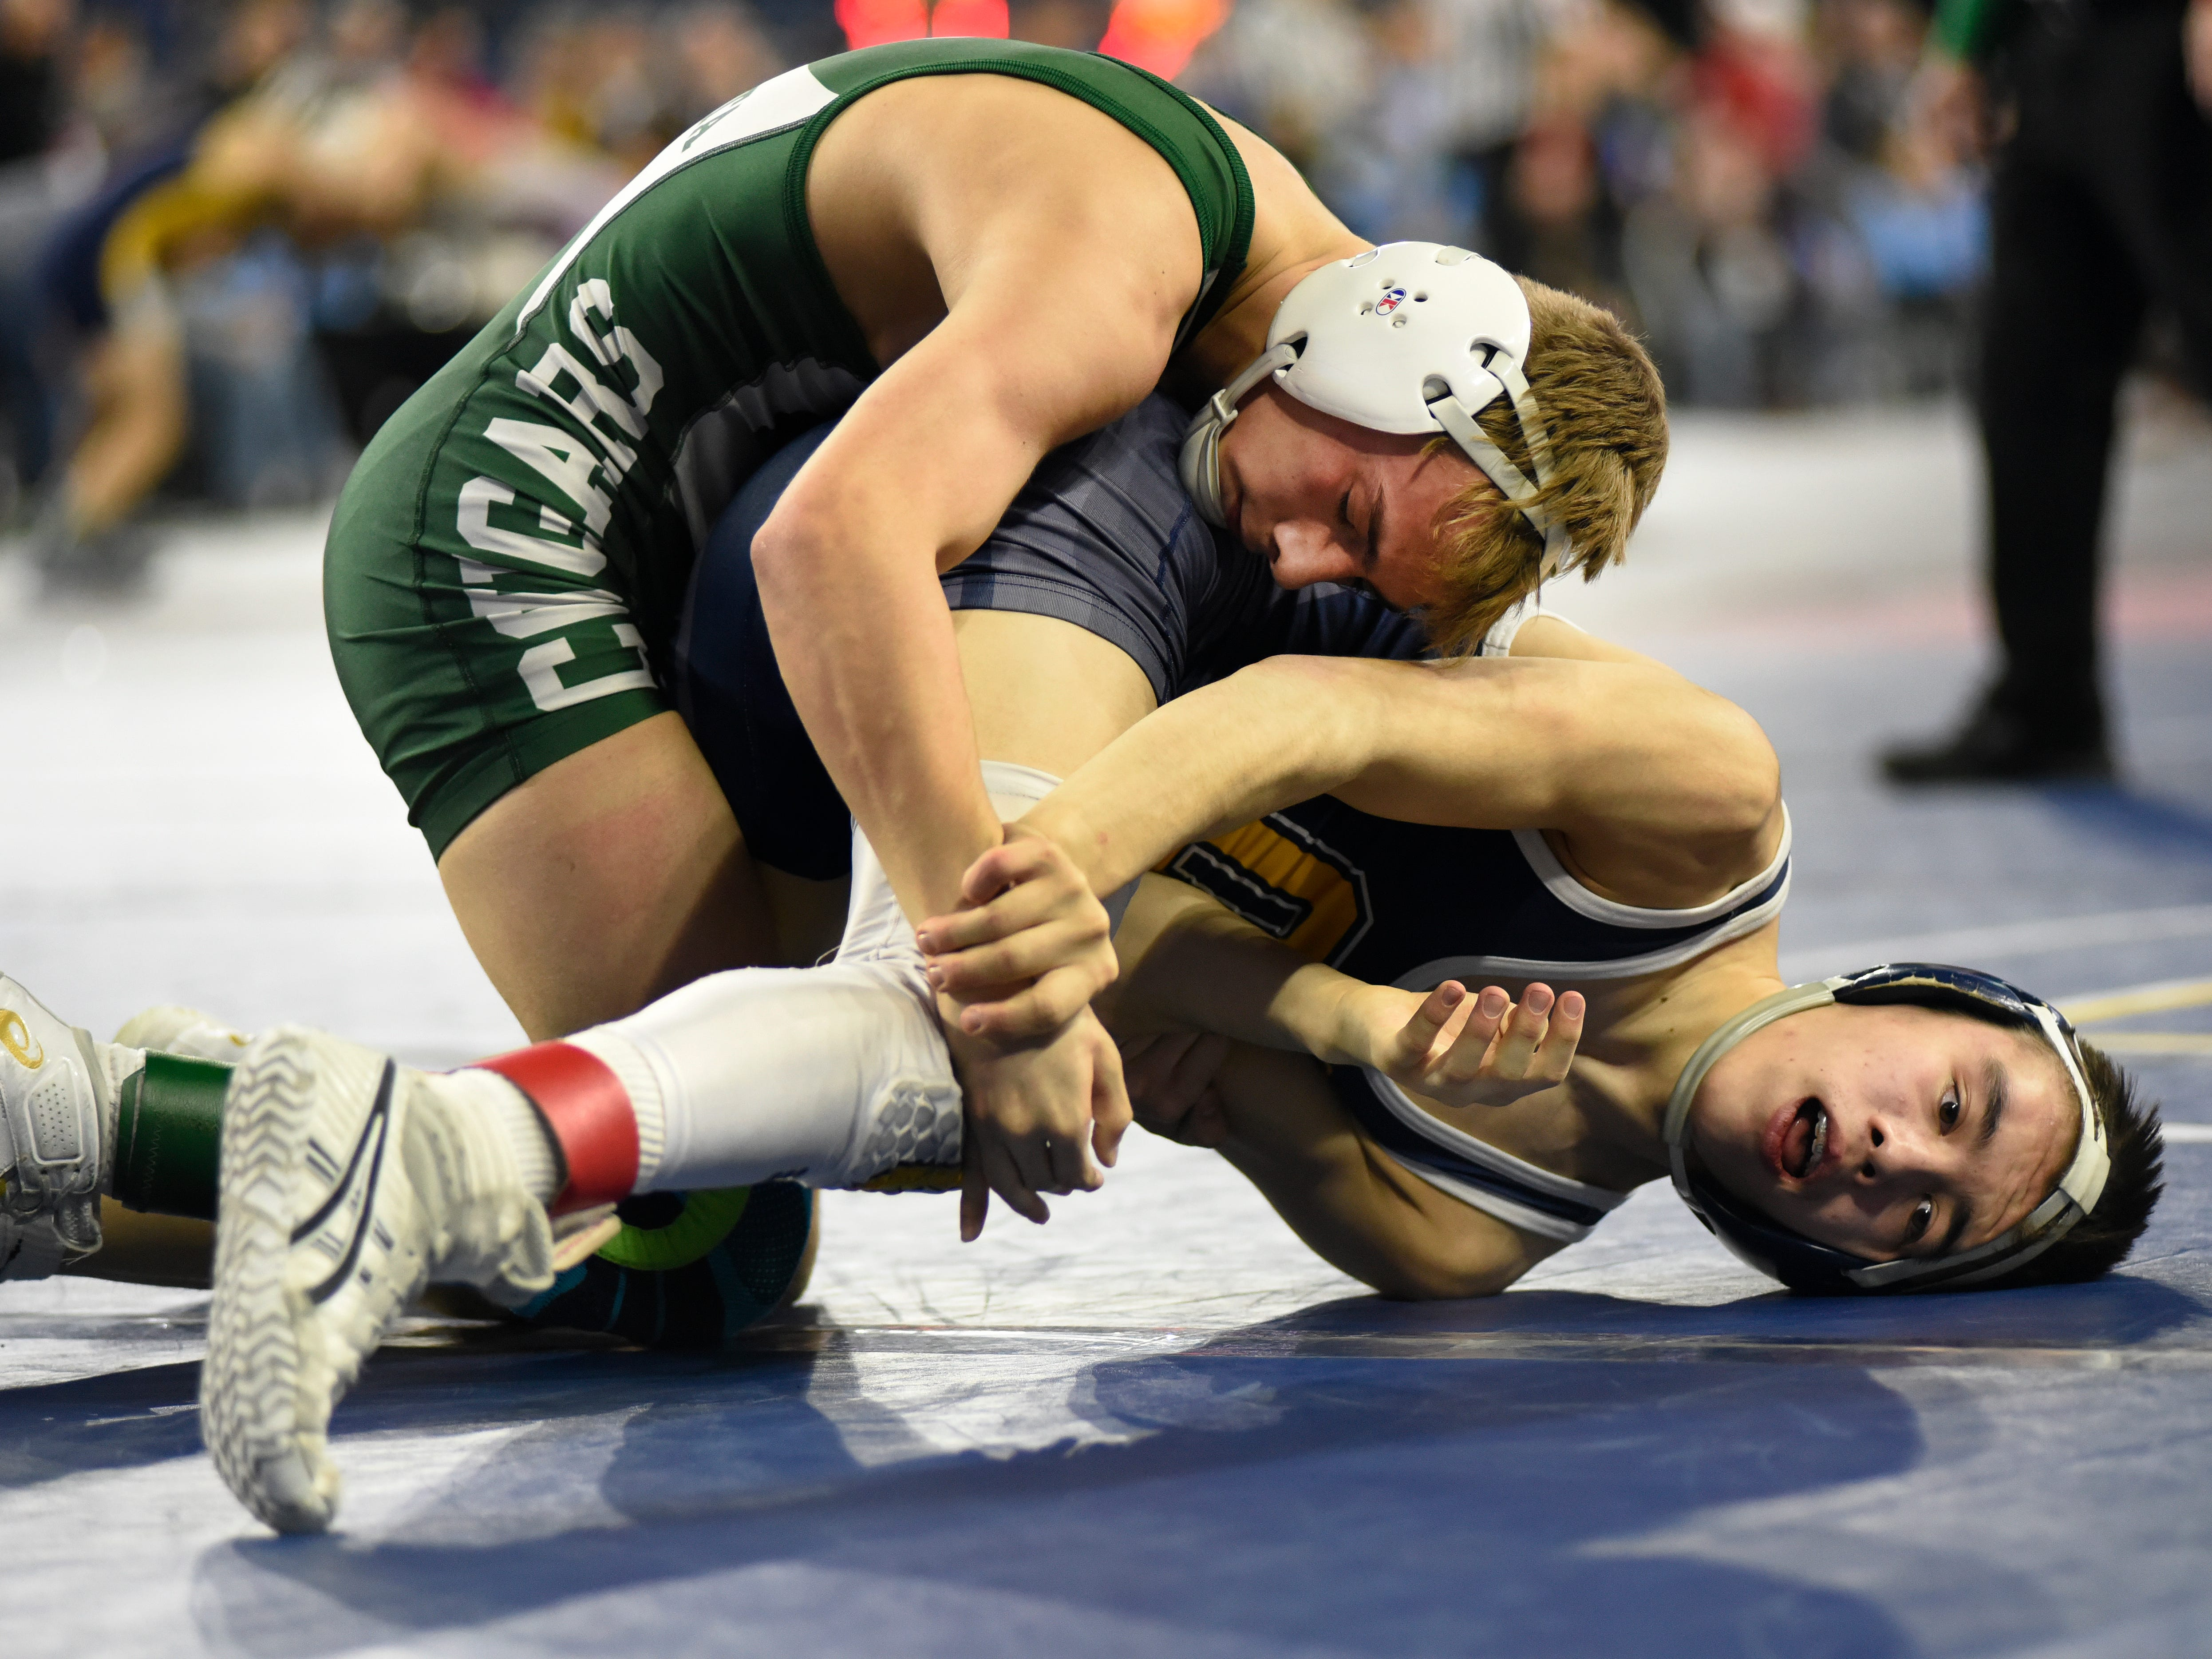 Brendan Ferretti of Macomb Dakota, left, wrestles Darren McLeod of Oxford in the 112 pound weight class, Friday. Ferretti won by decision over McLeod.